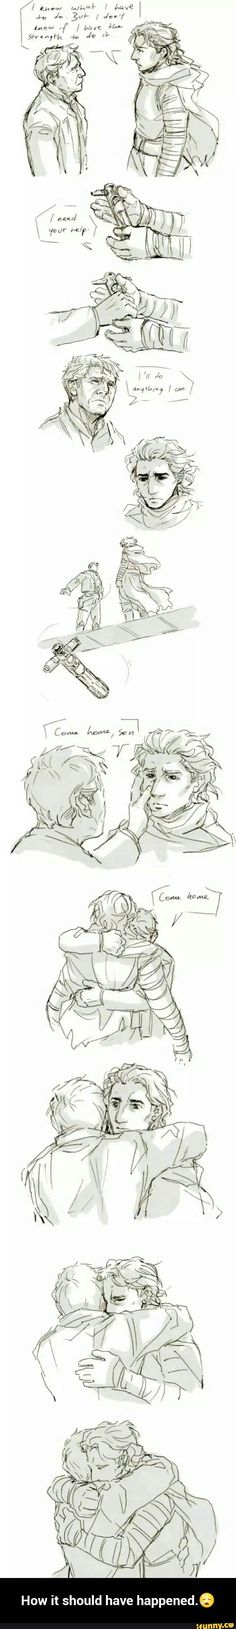 How it should have happened. Ben and Han Solo << Yep, I'm pinning more stuff about Han and Ben Solo that'll make me cry.